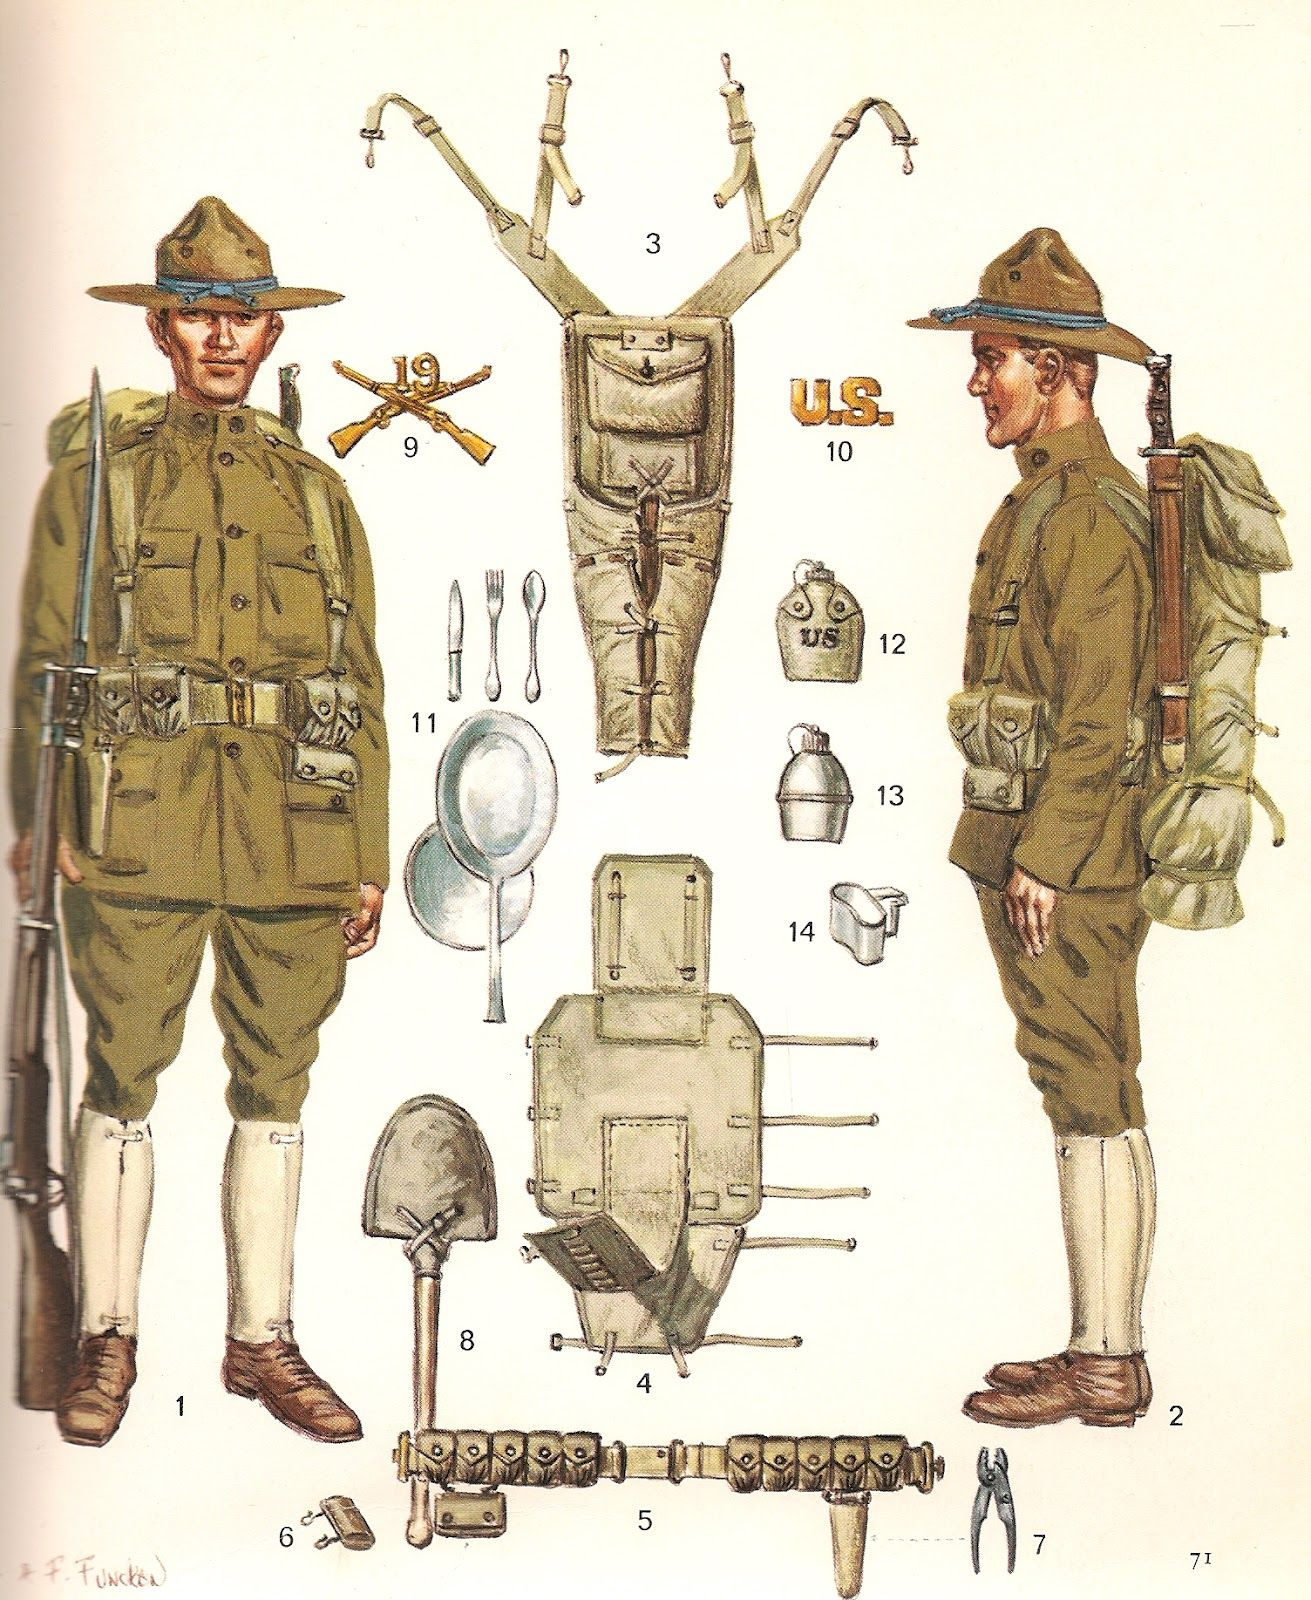 uniform of the american soldier during ww1 from 1917 1918 1 re guerre mondiale ww1. Black Bedroom Furniture Sets. Home Design Ideas